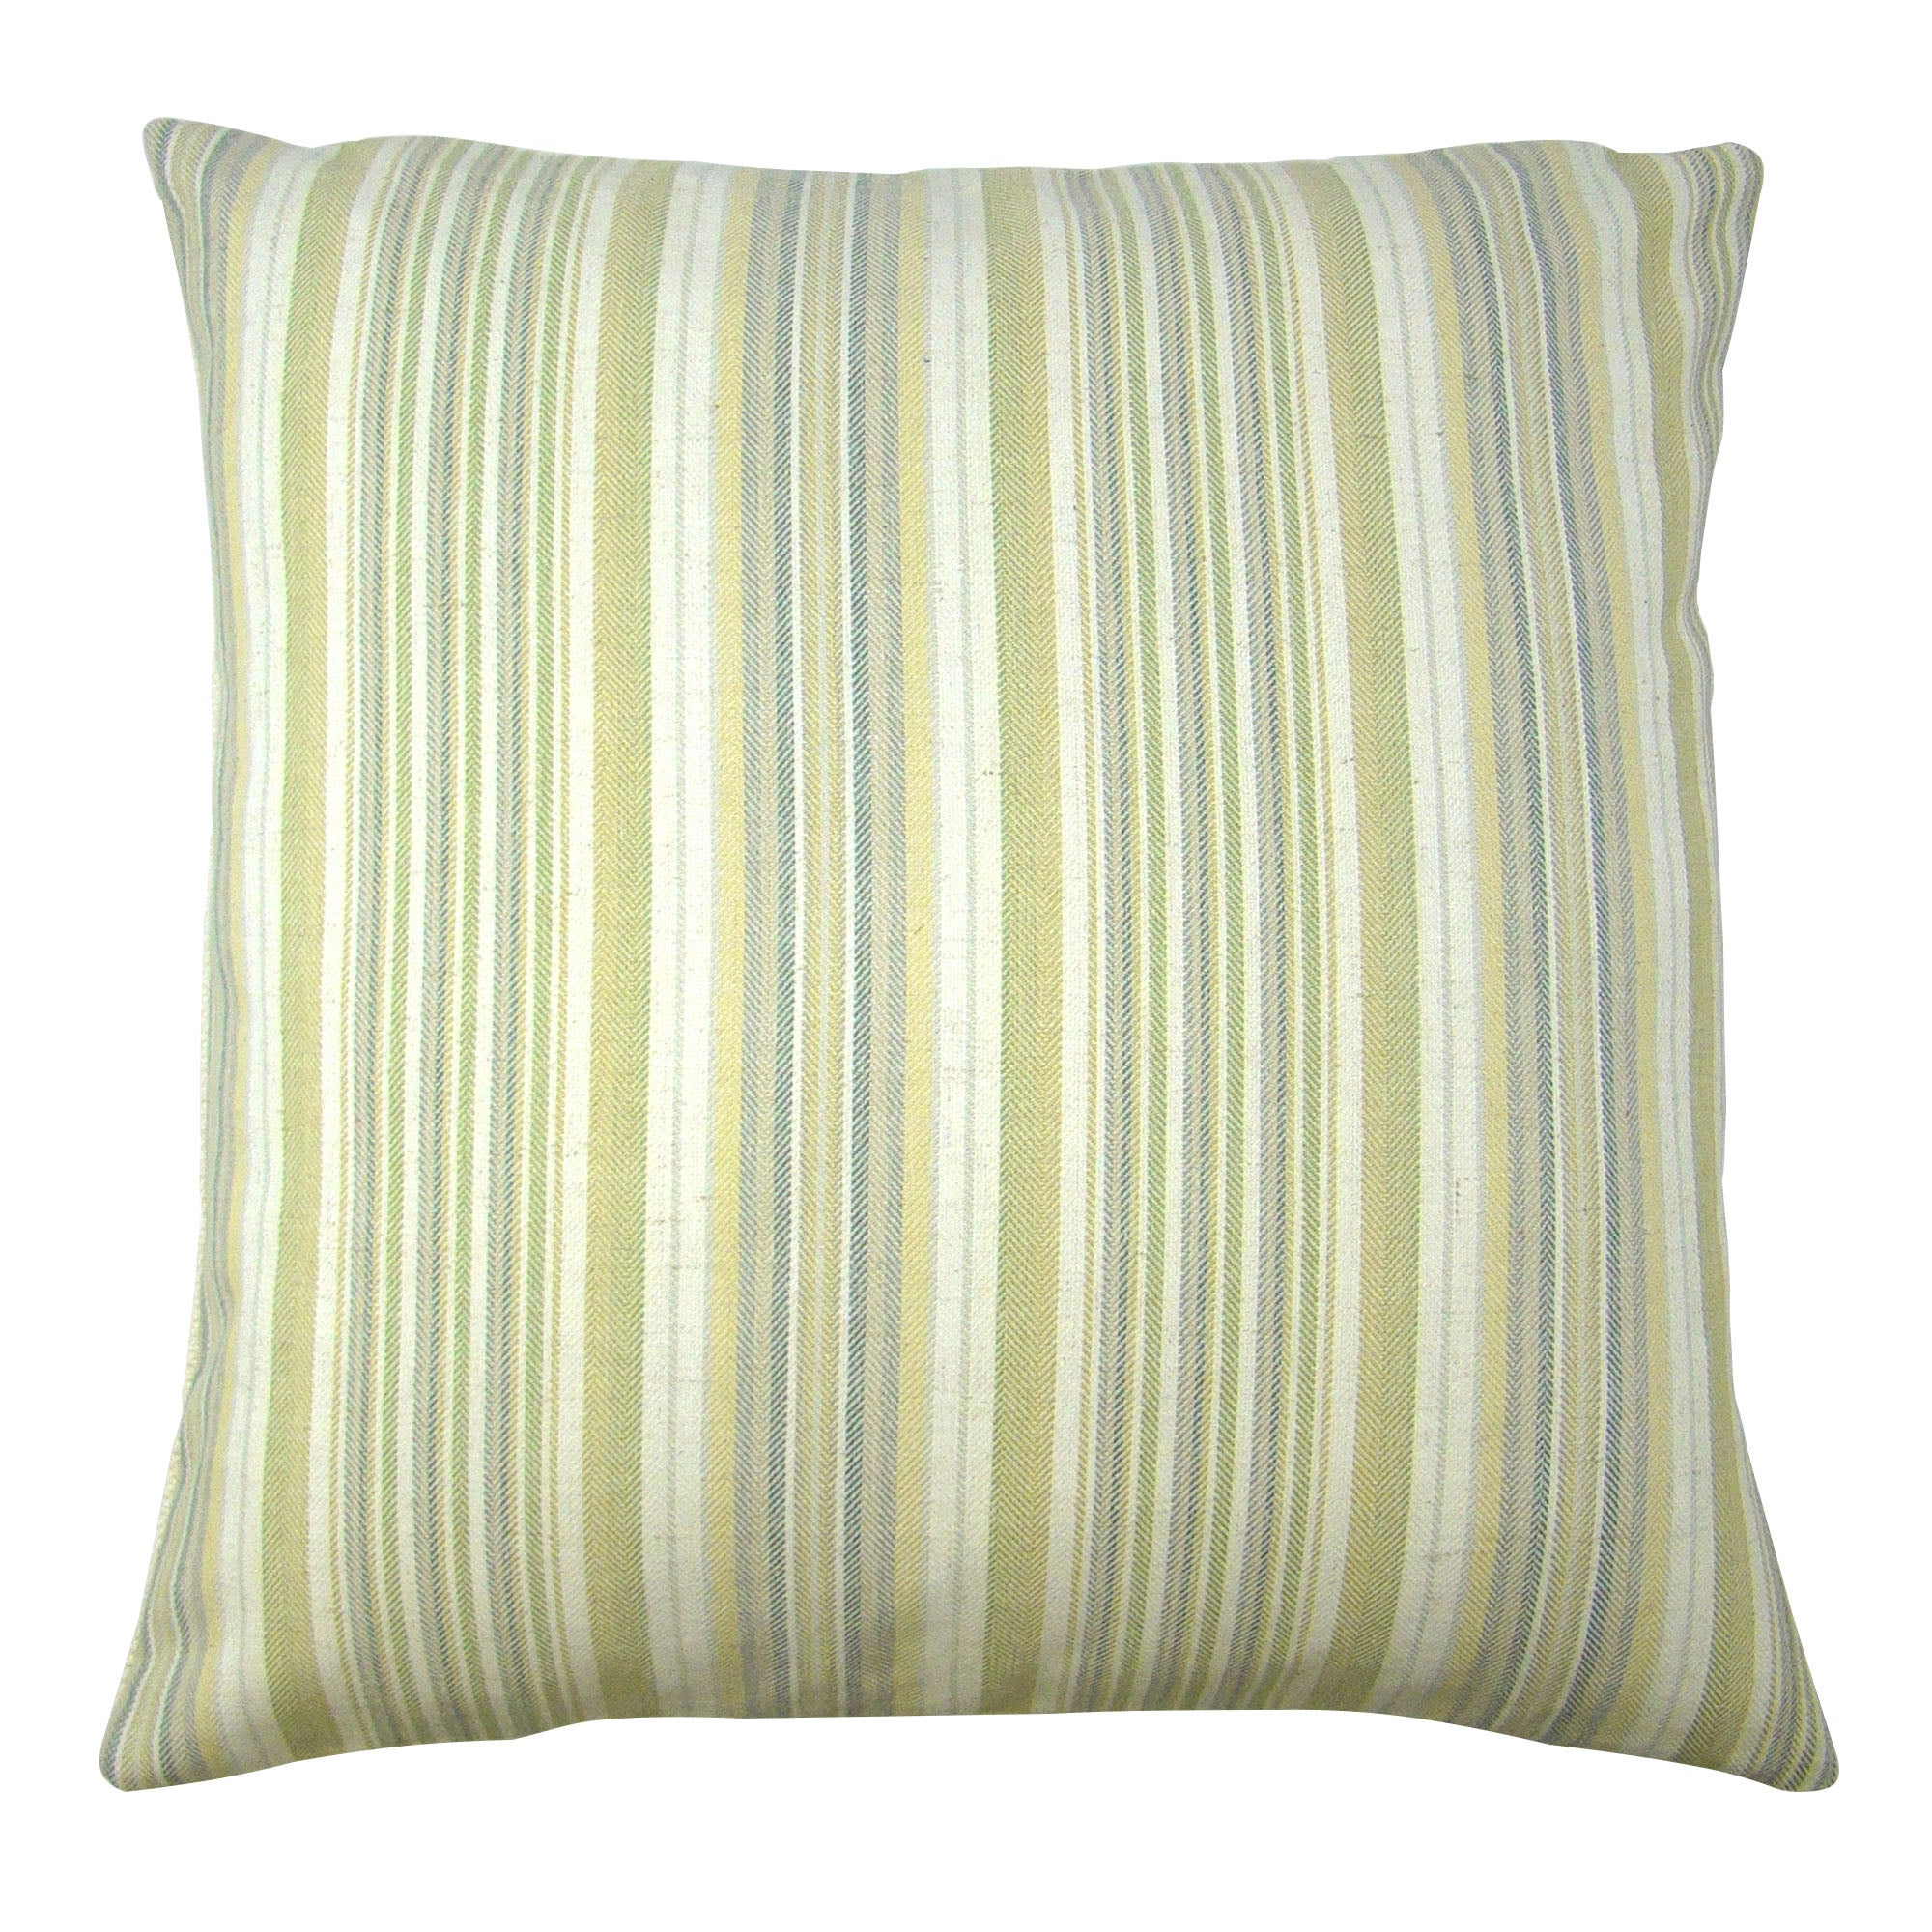 Photo of Coastal green stripe cushion cover green